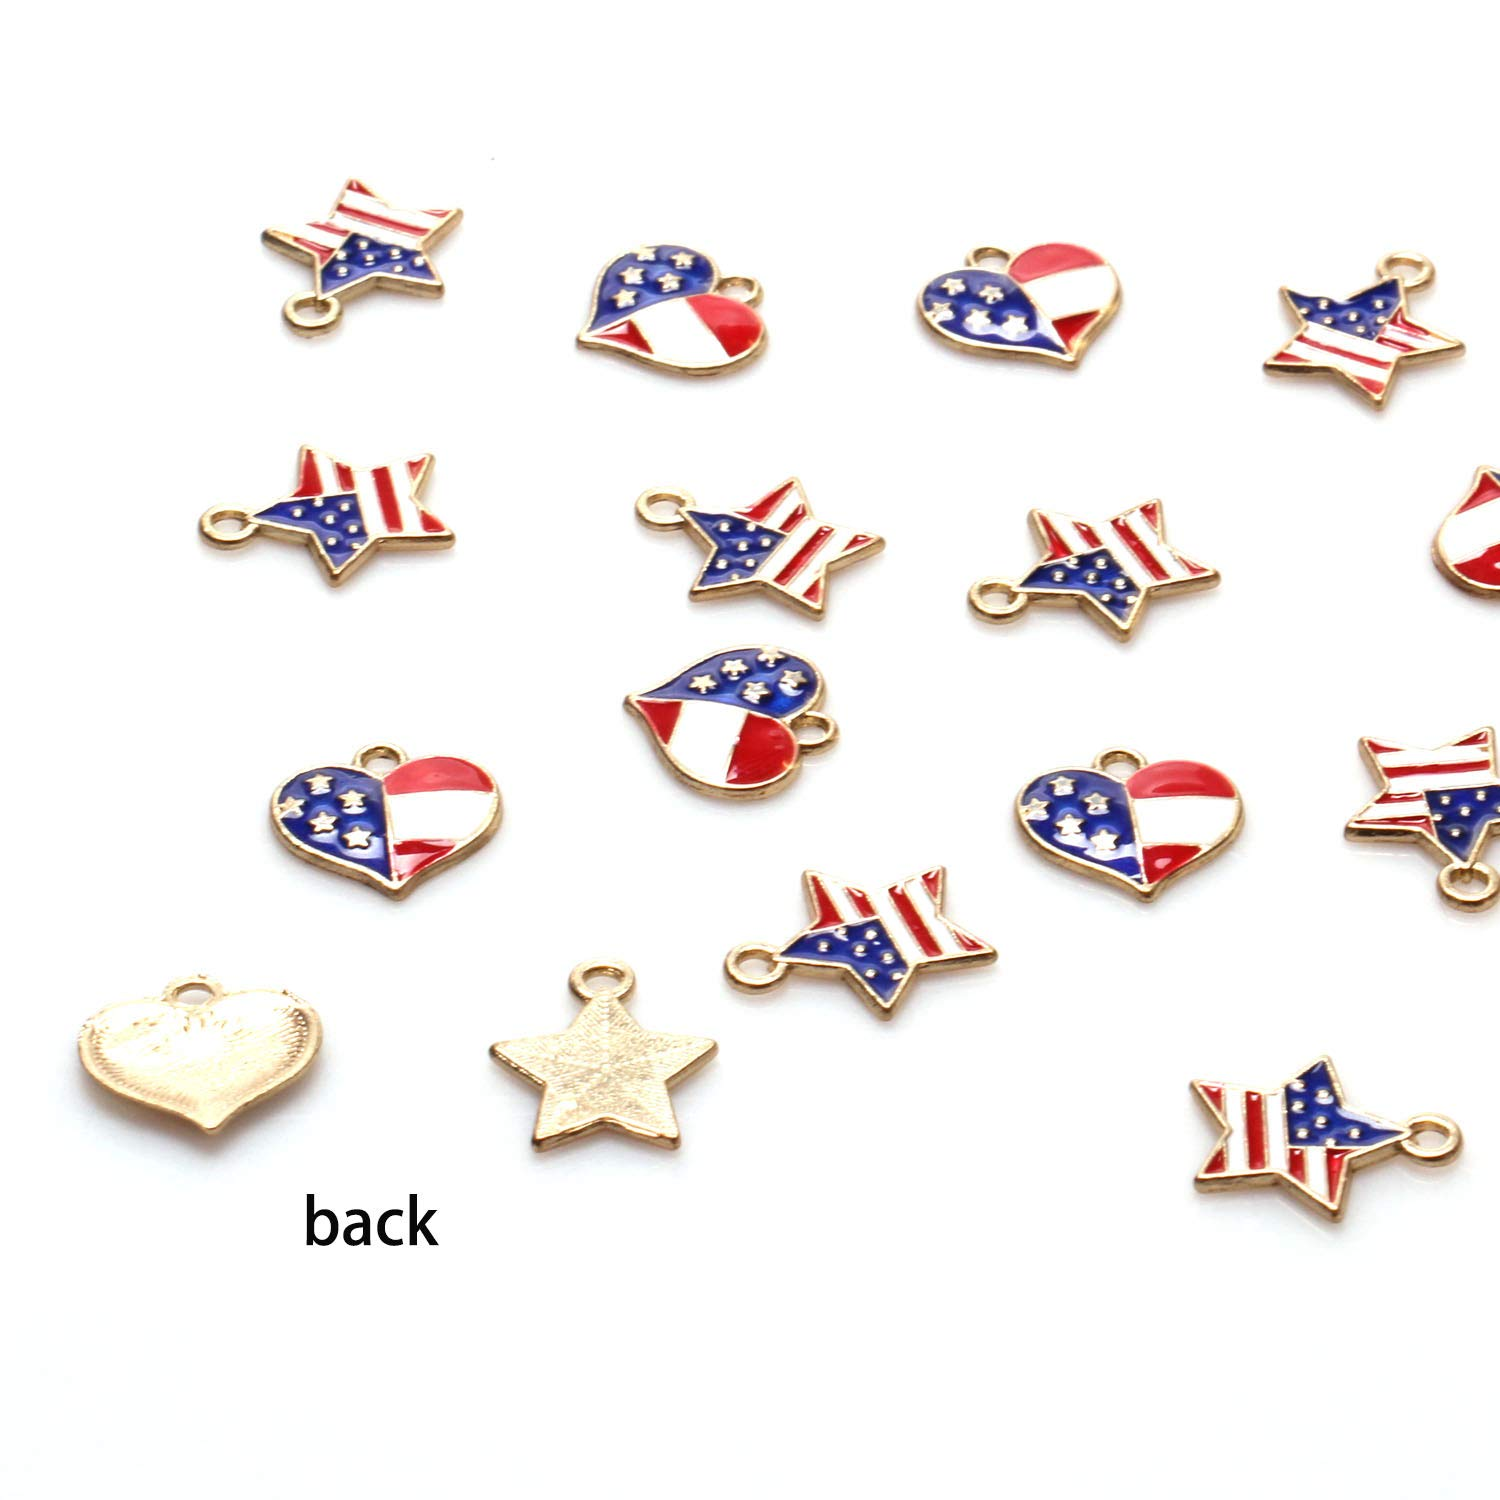 Style 1 and 2 Mayam 50 Pieces American Flag Charms Pendant Patriotic Enamel Charms for 4th Independence Day Ornament of July DIY Decoration Jewelry Making